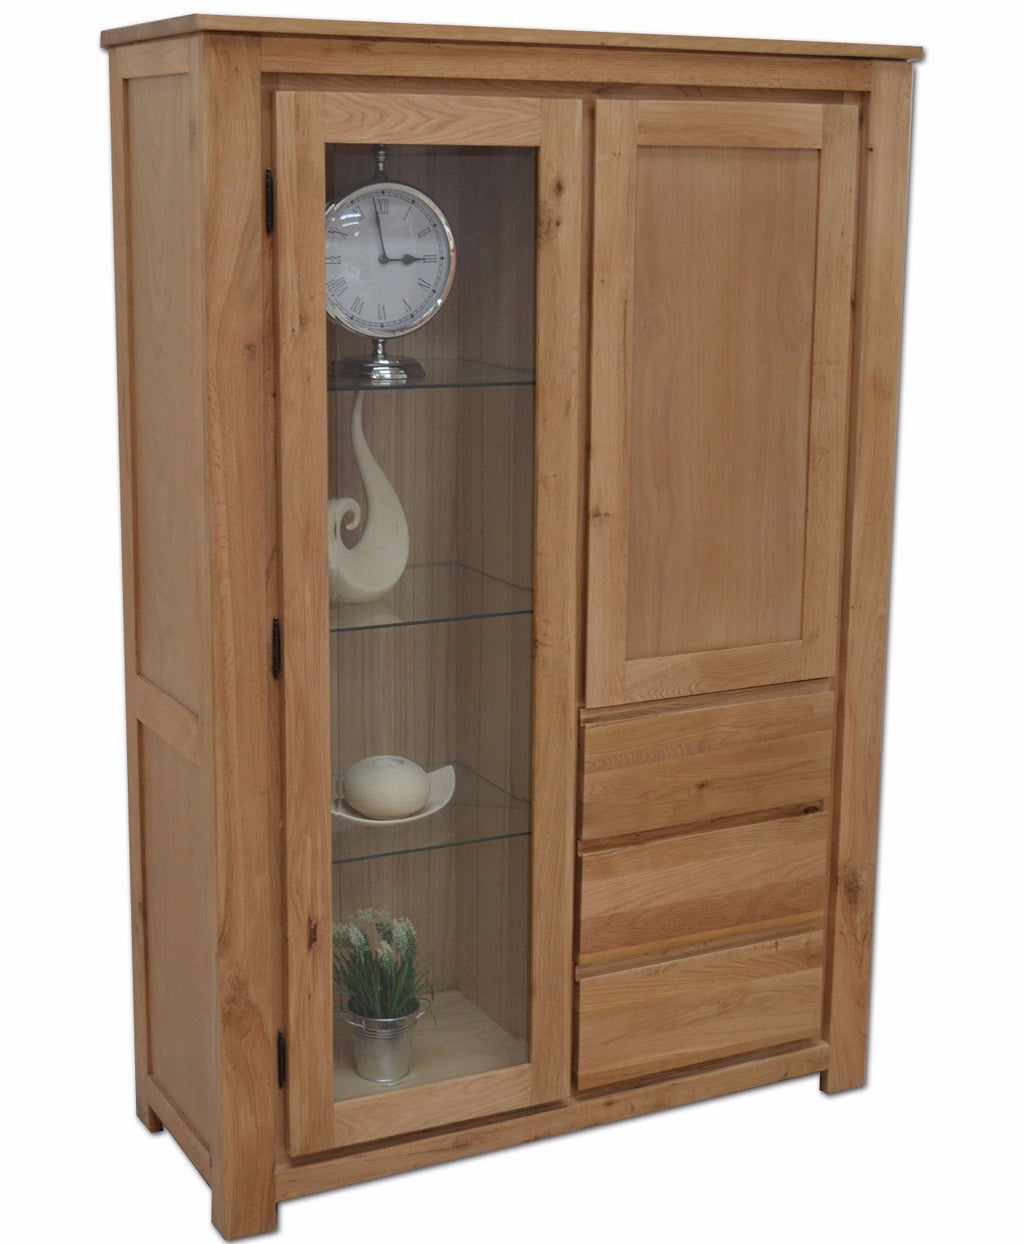 Bloomsbury Combination Glass Display - Oak Village